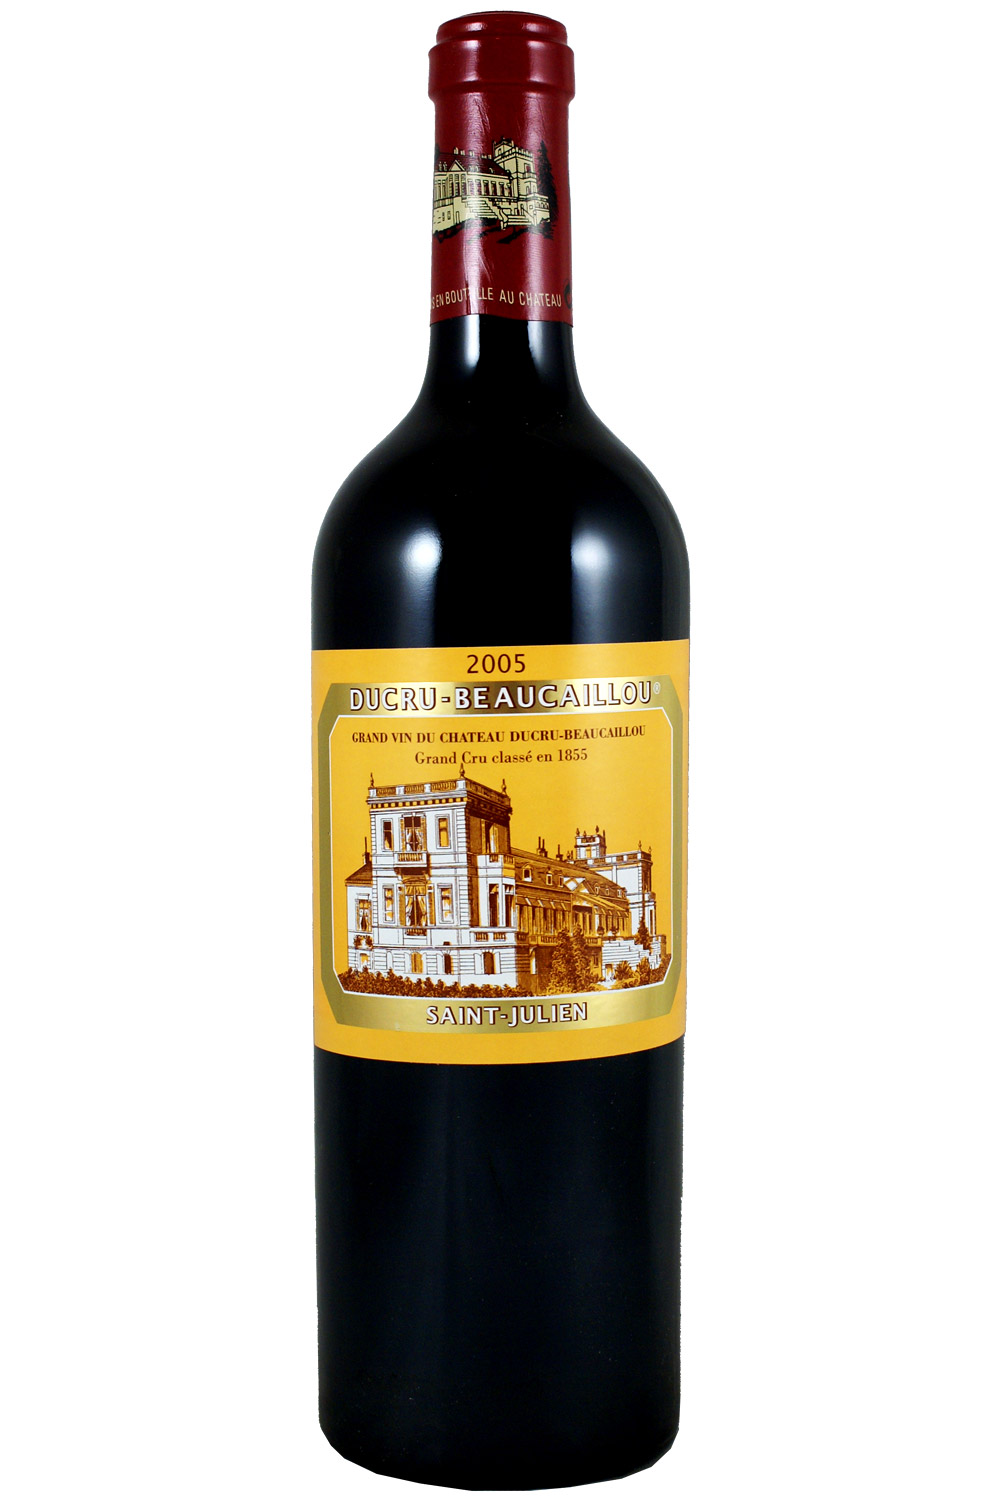 2005 Ducru Beaucaillou Bordeaux Red 750 ml